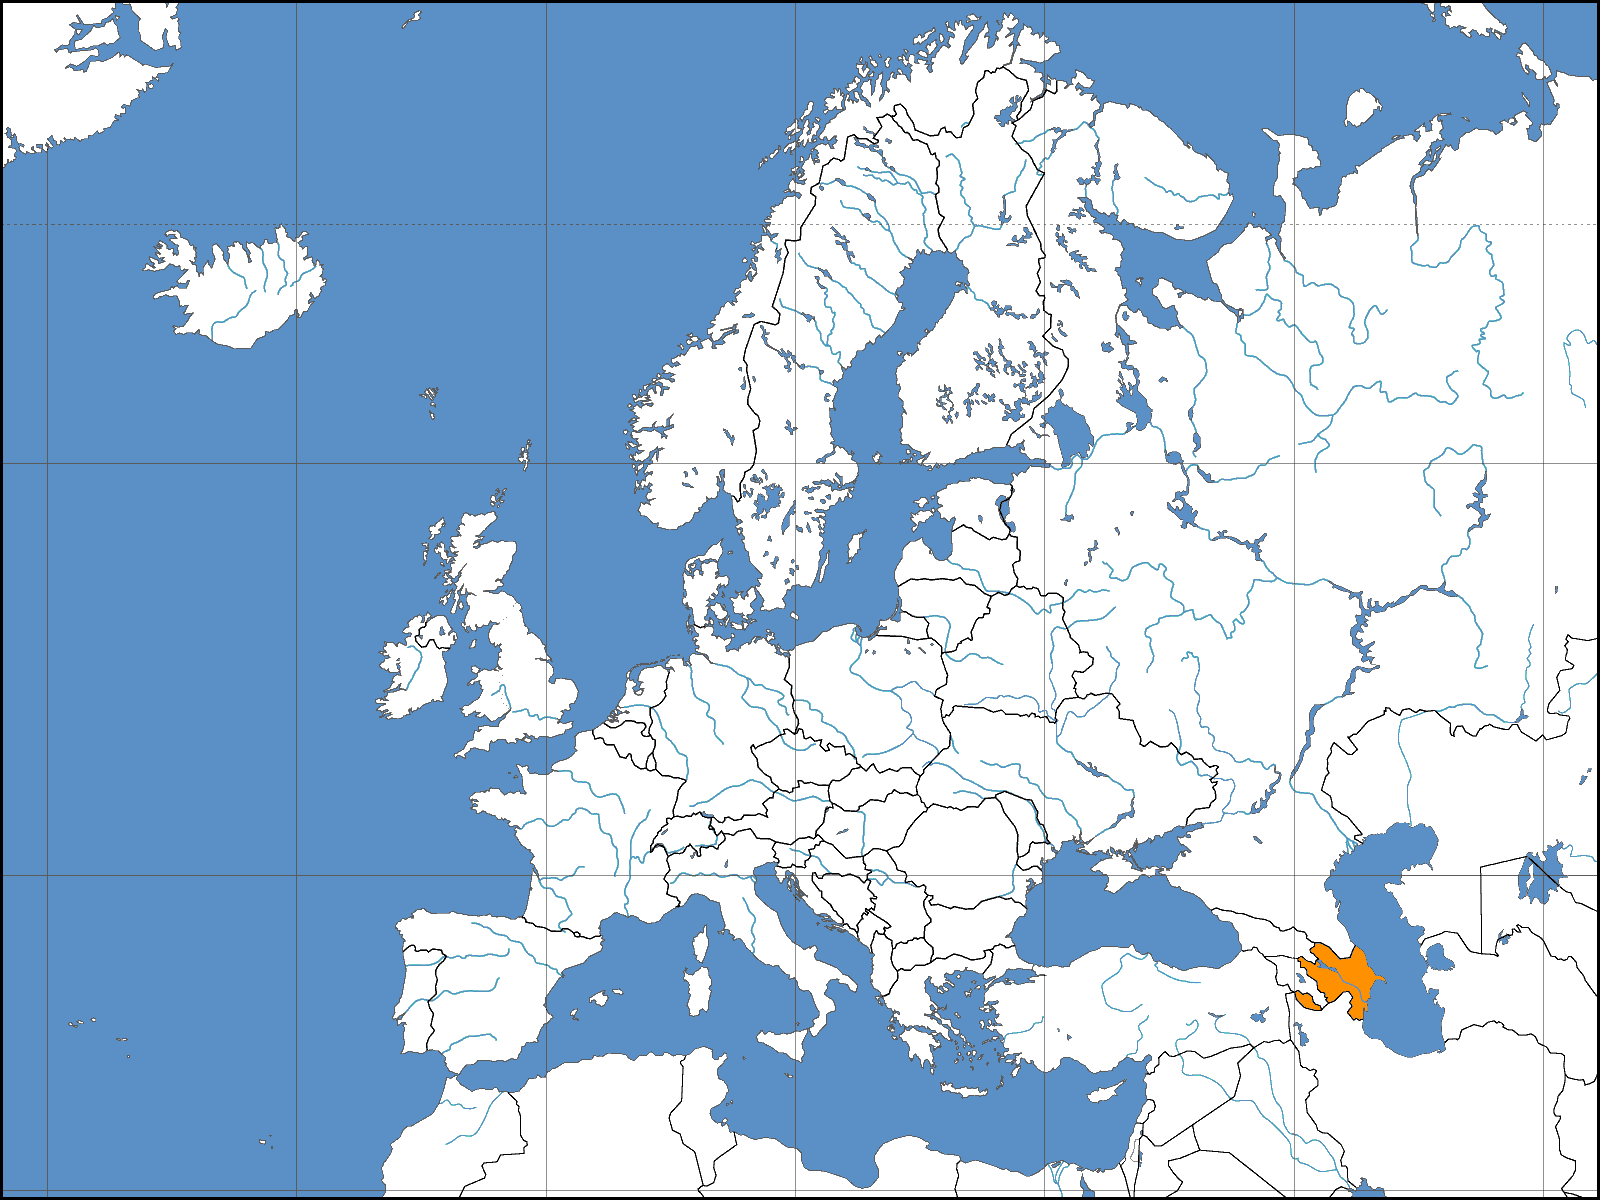 http://upload.wikimedia.org/wikipedia/commons/9/92/Europe_location_AZN.png